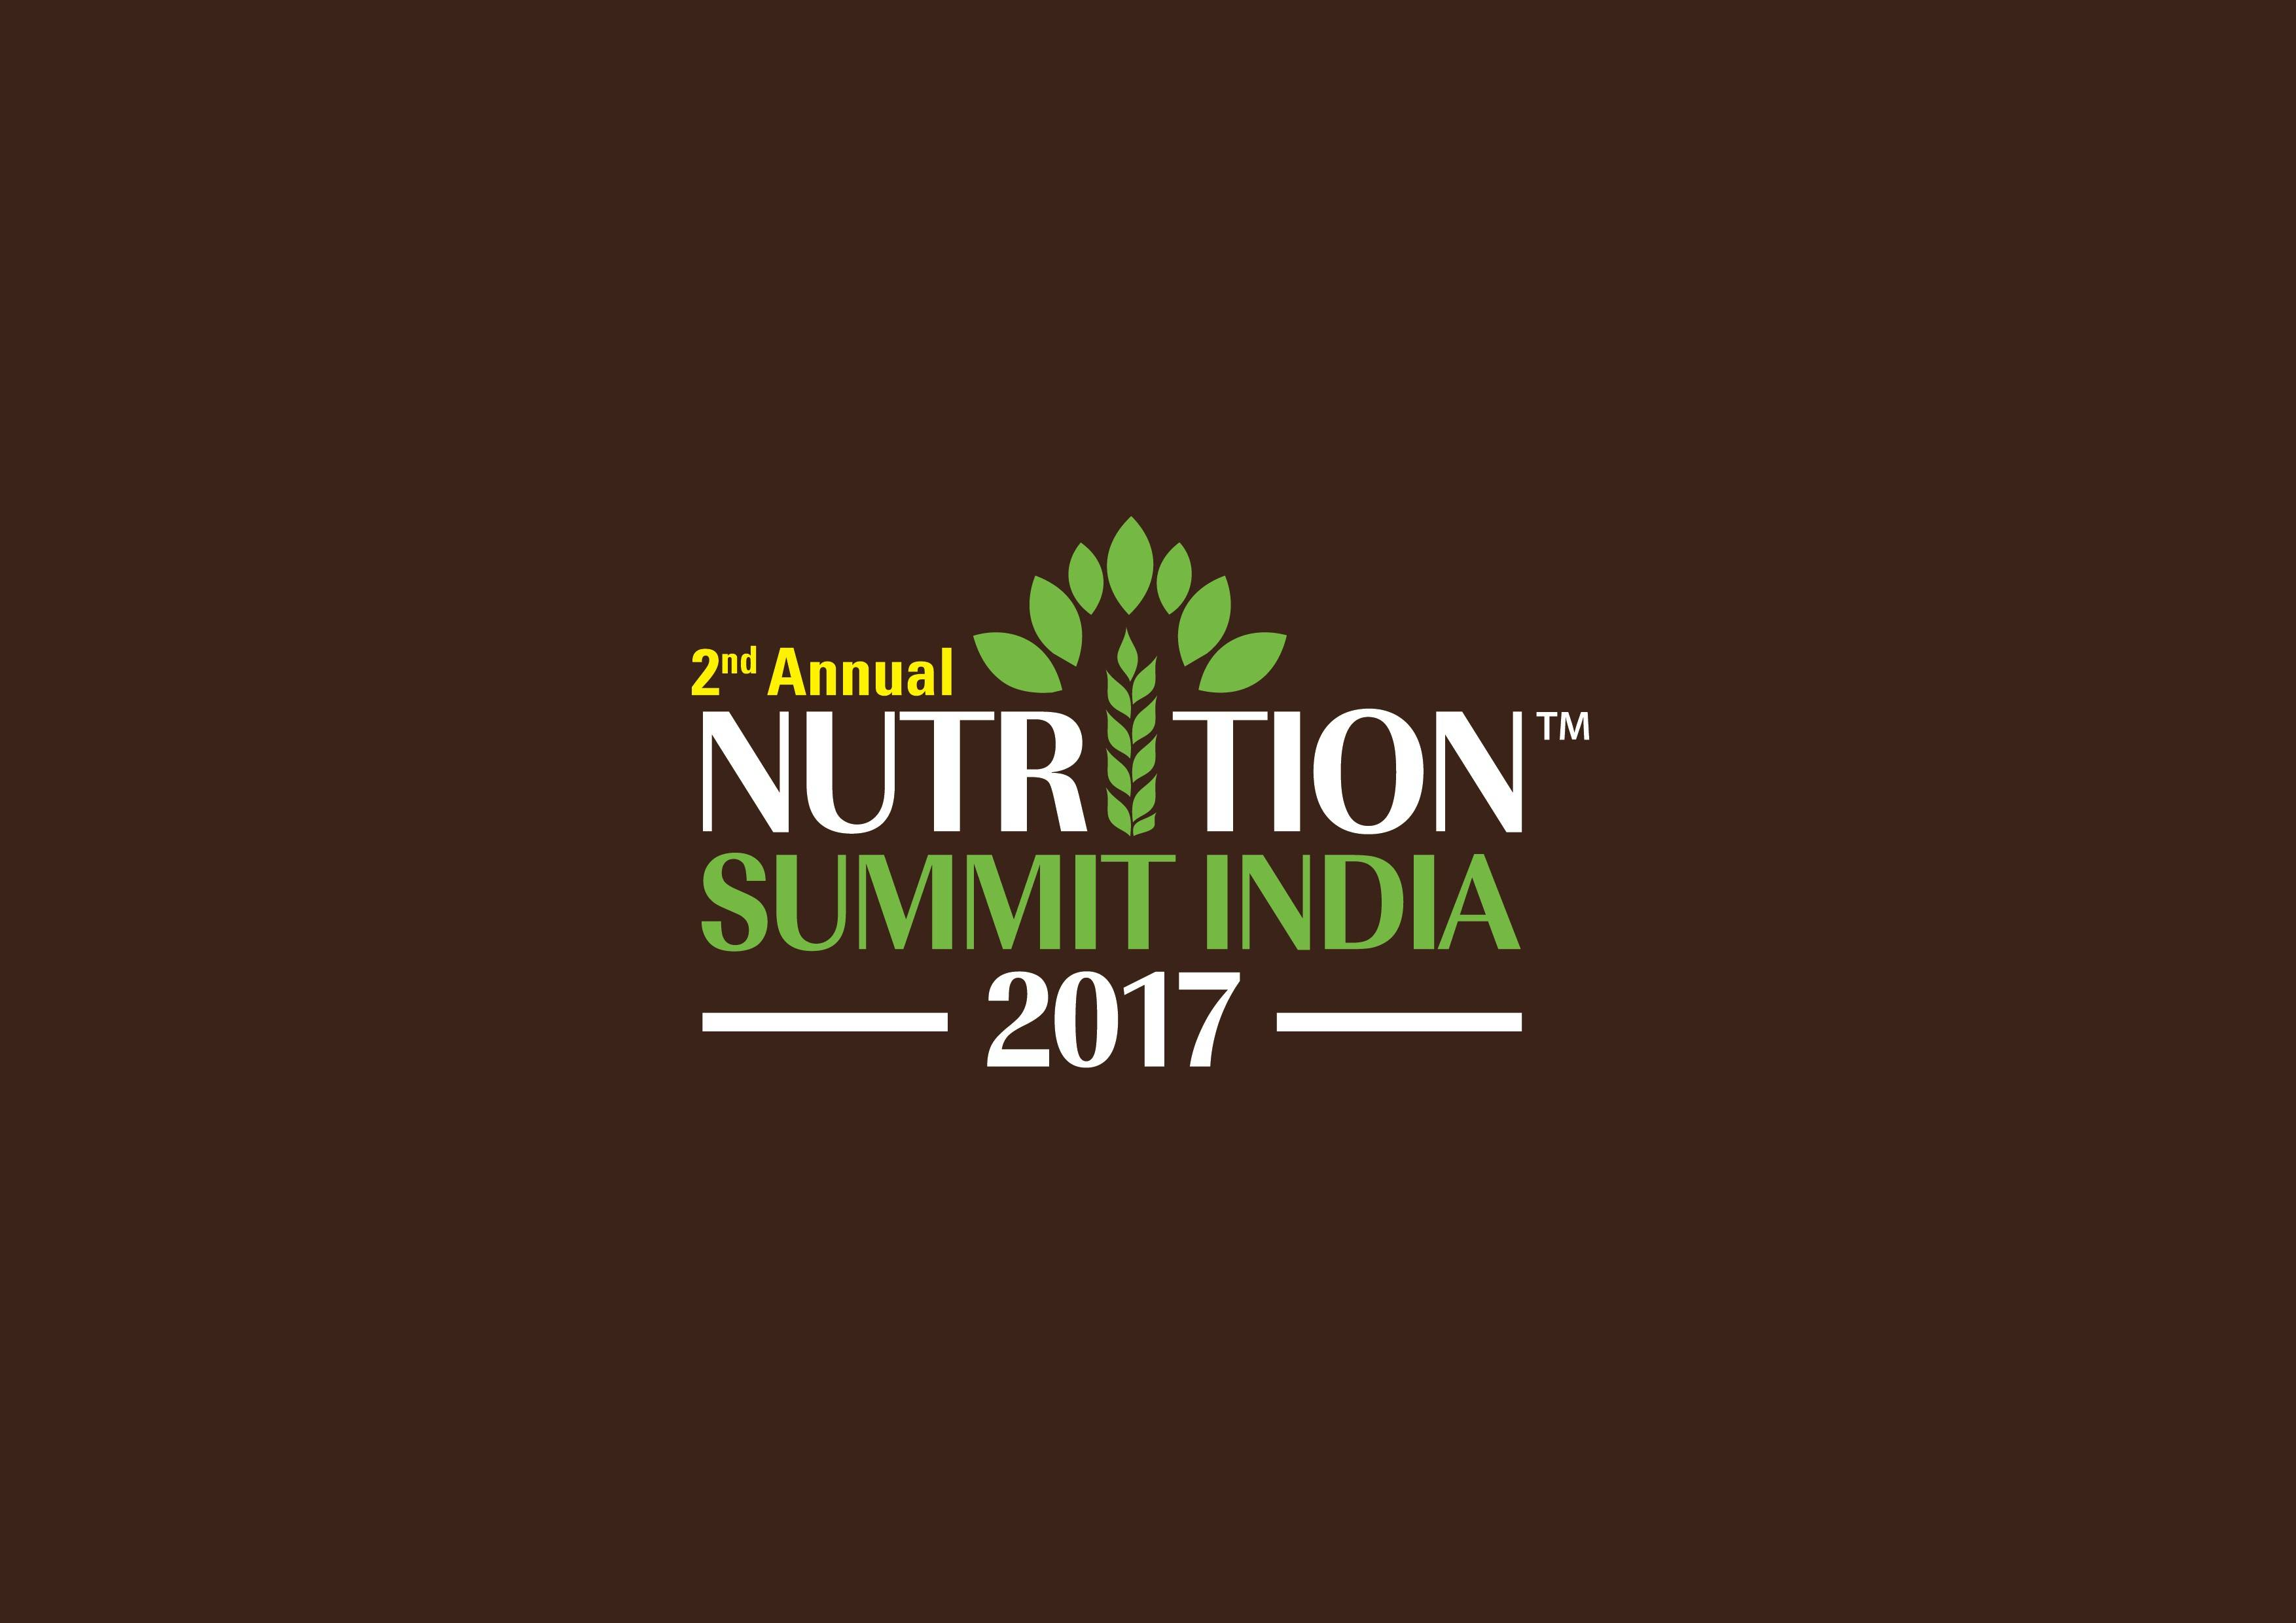 2nd Annual Nutrition Summit India 2017